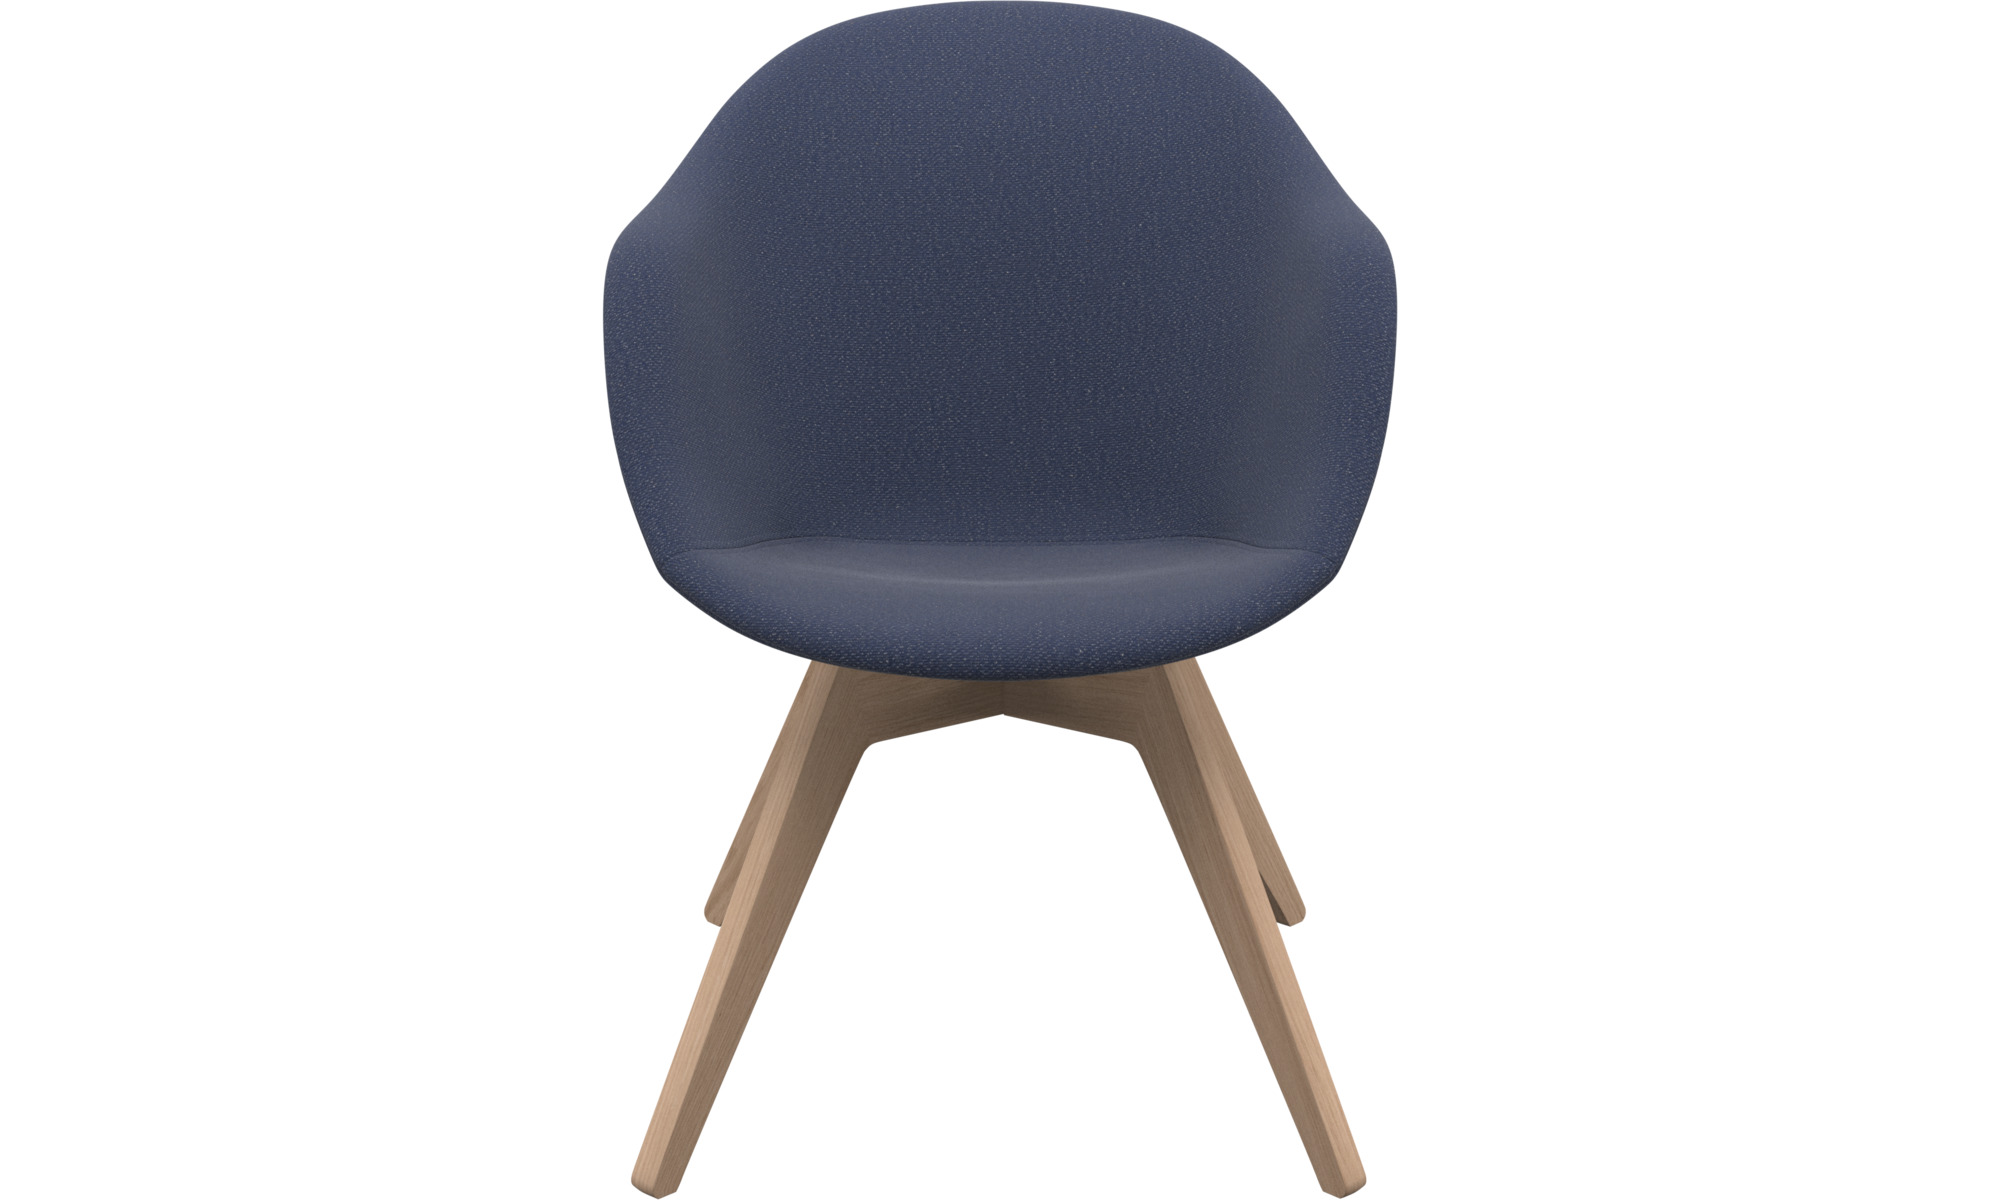 Armchairs - Adelaide lounge chair - BoConcept